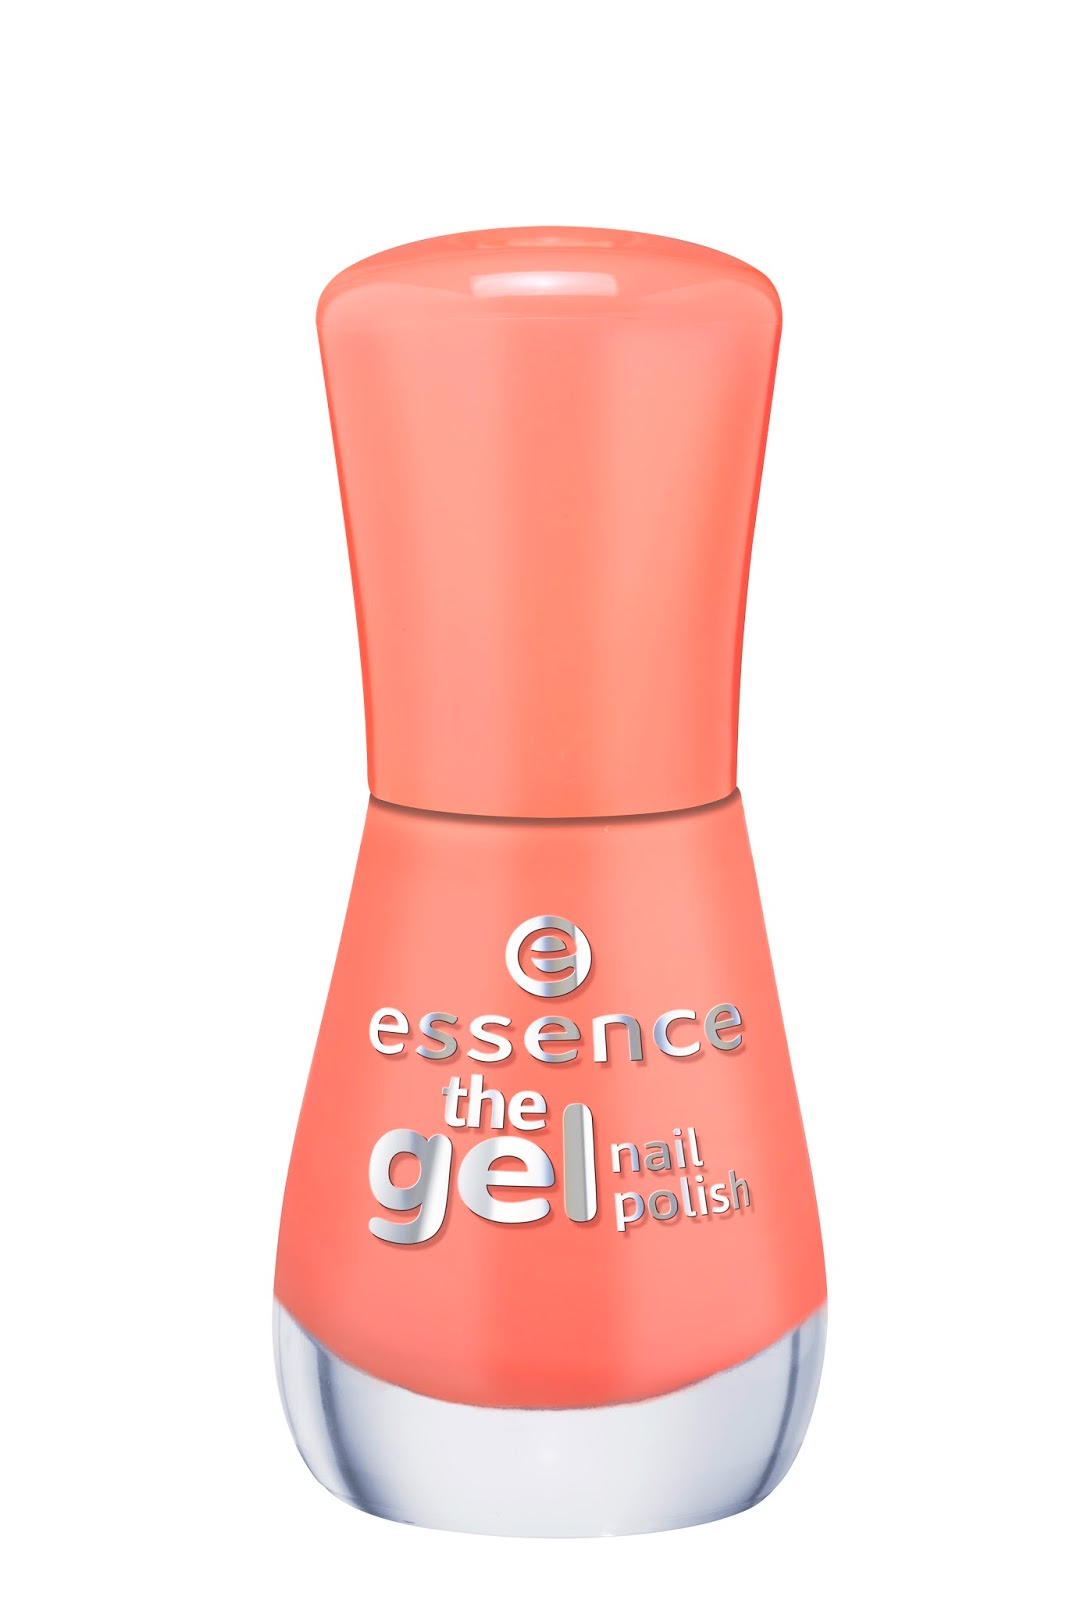 Essence the gel nail polish